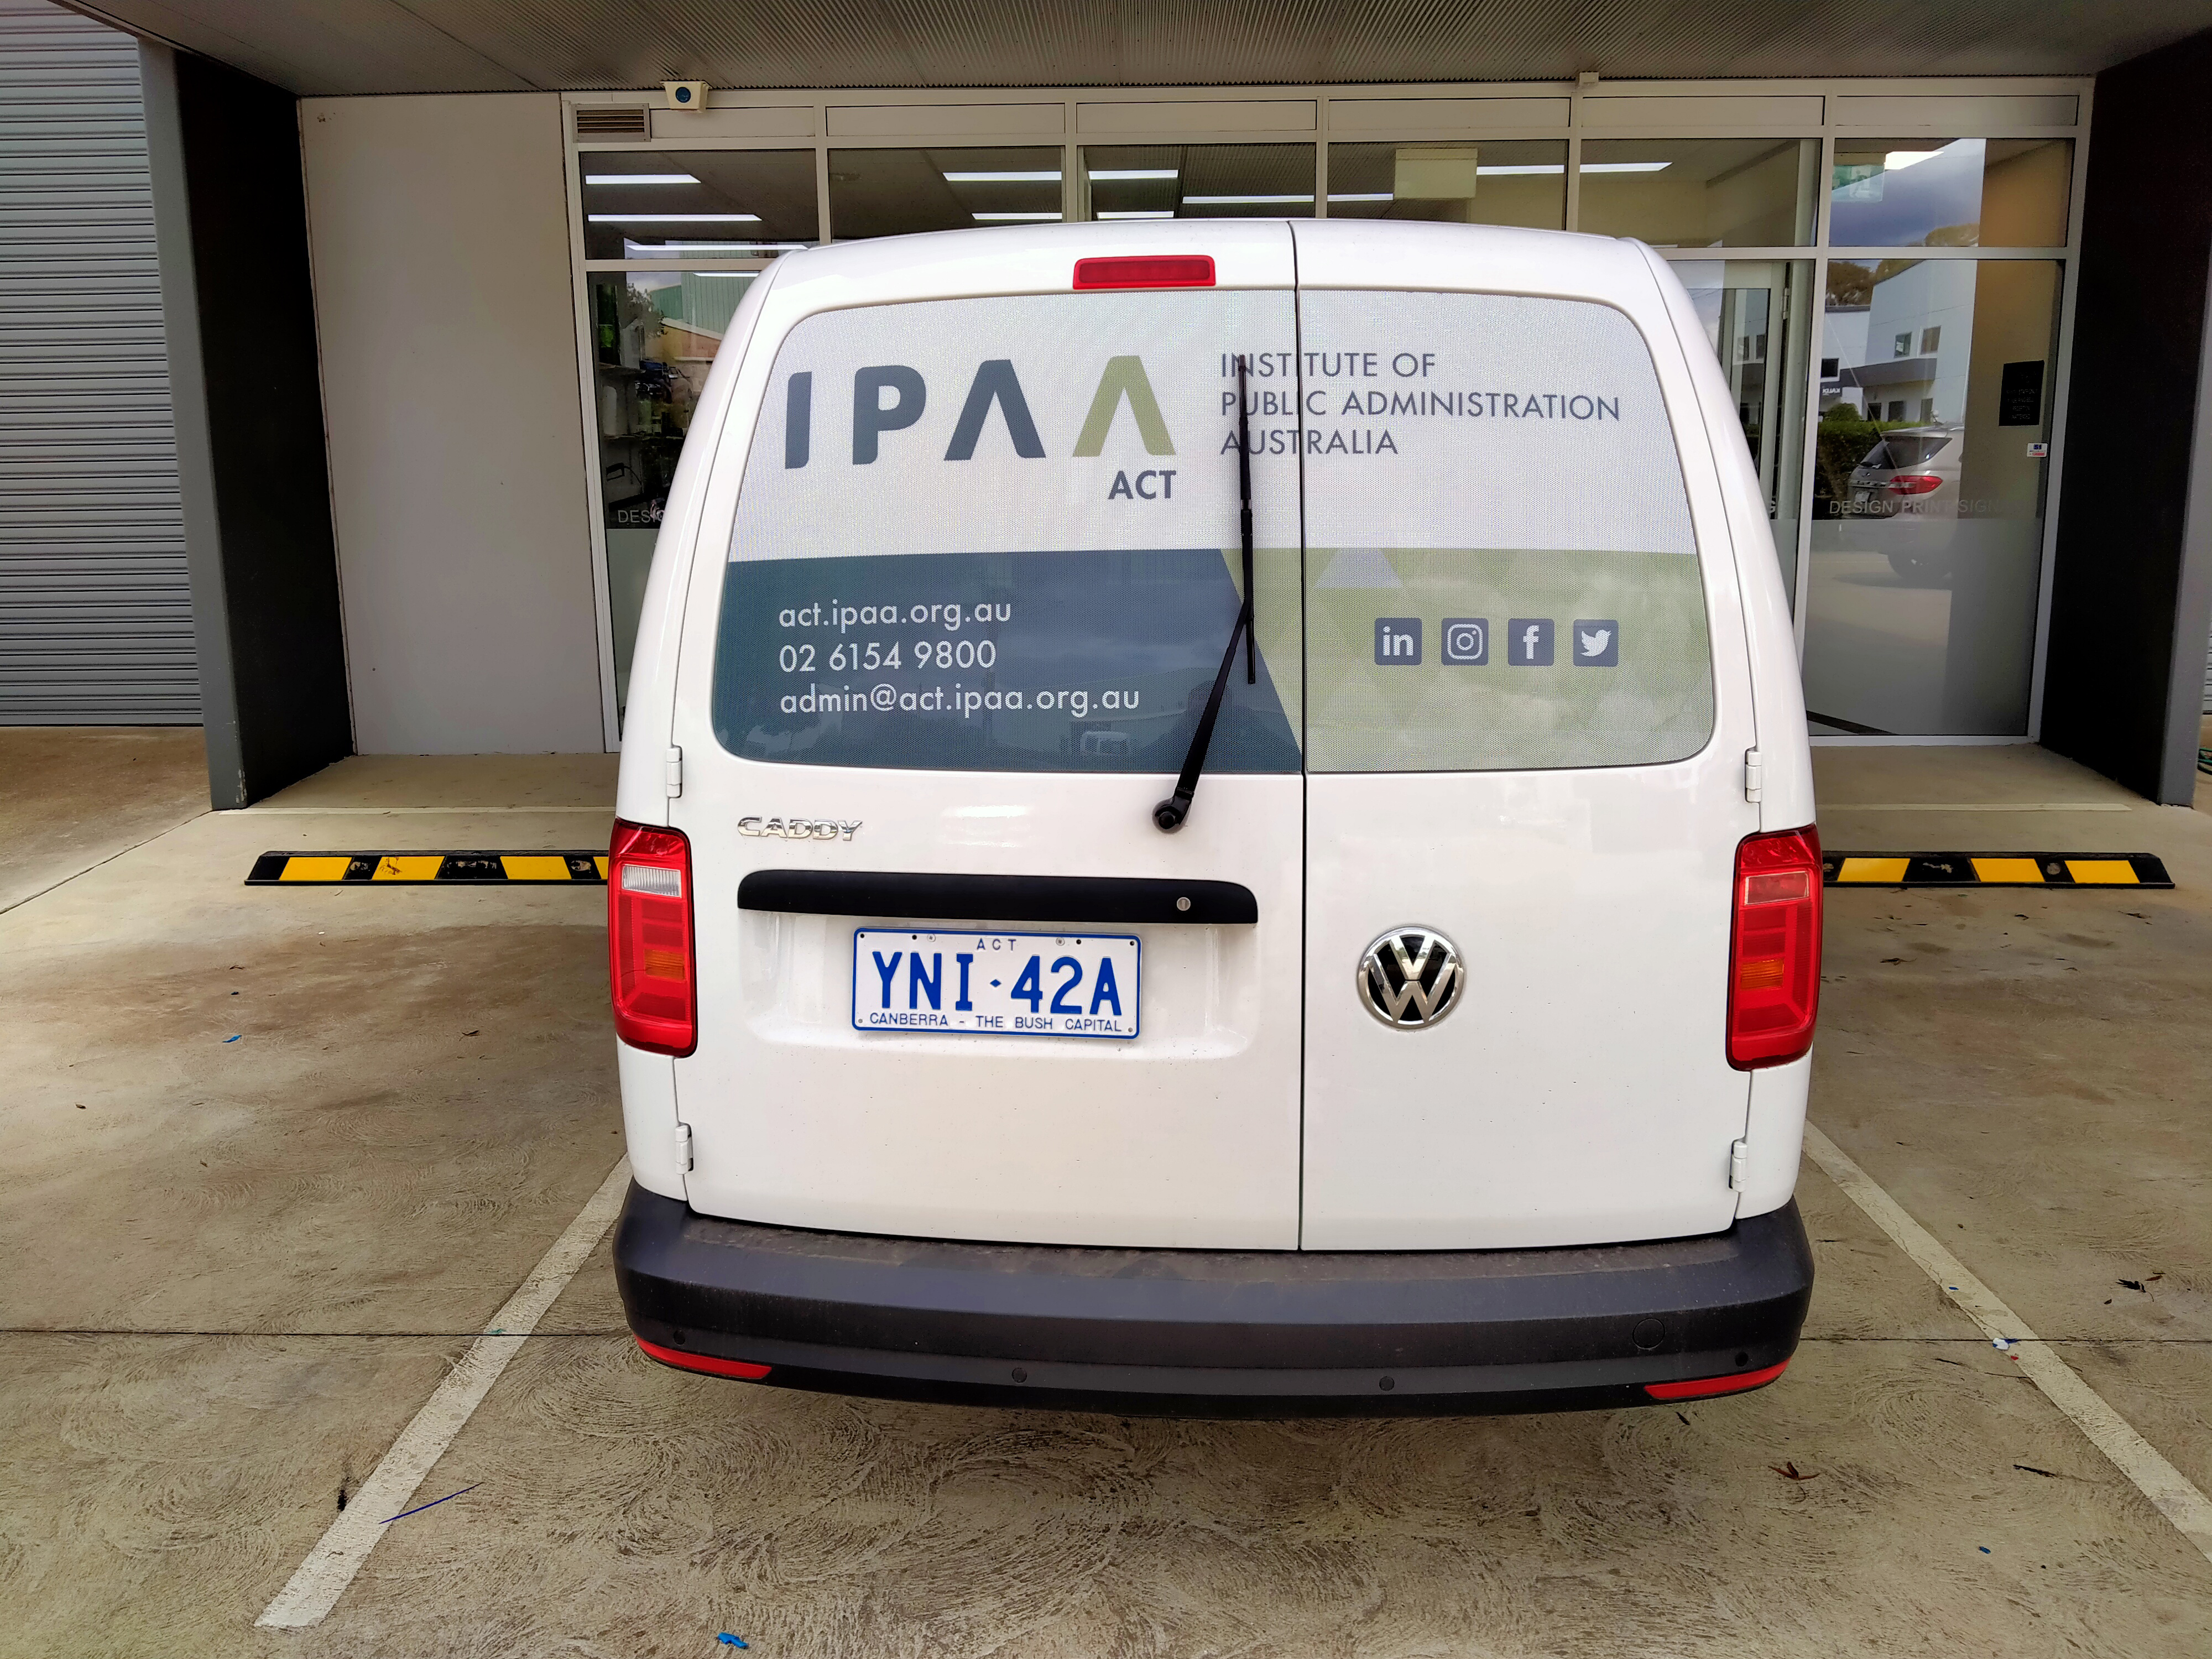 Canberra Van Signage - IPAA Volkswagen Caddy Vehicle Signage Que